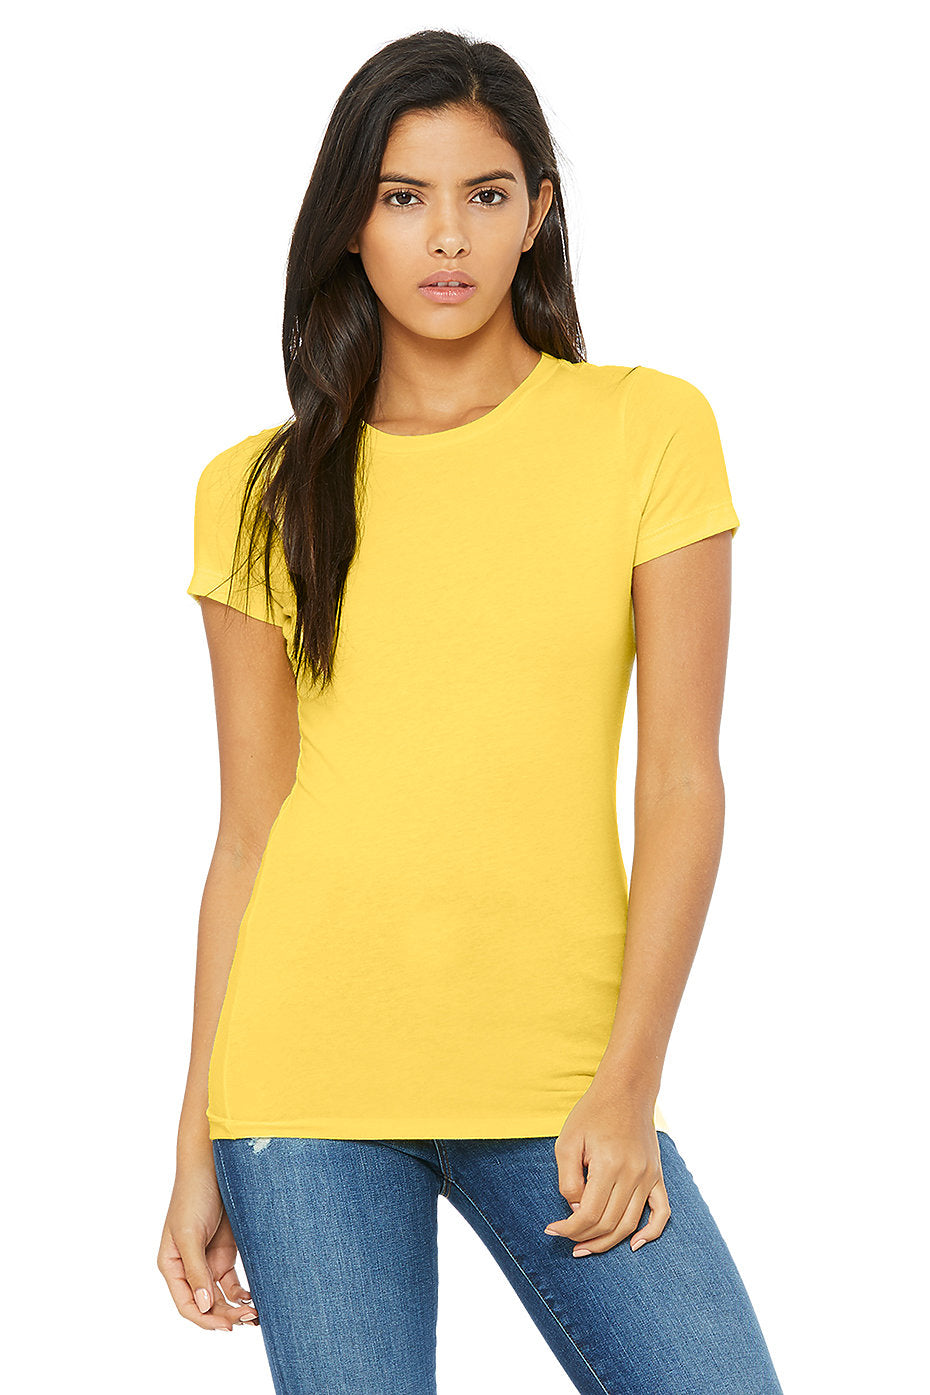 WOMENS 100% Cotton S/S Tee - Golden Yellow